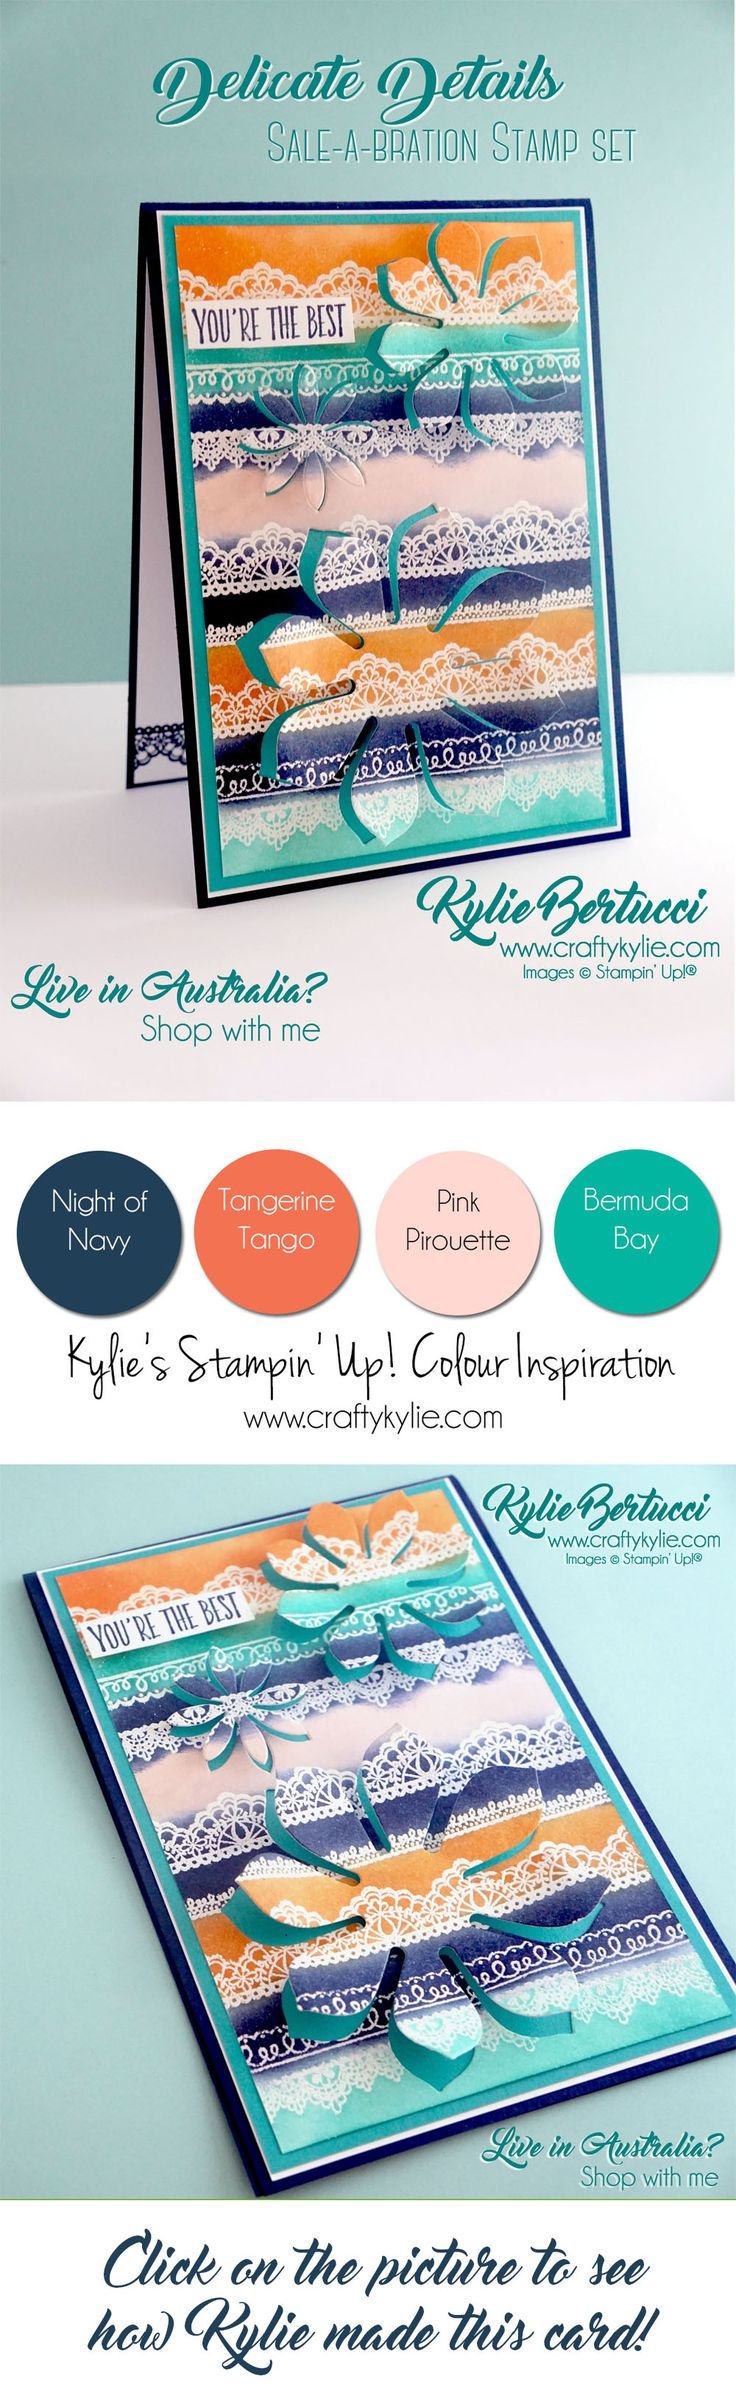 Kylie Bertucci - Delicate Details and Succulent Framelits. Crazy Crafters Blog hop with special guest Rachel Tessman. #stampinup #cardmaking #handmadecard #rubberstamps #stamping #kyliebertucci